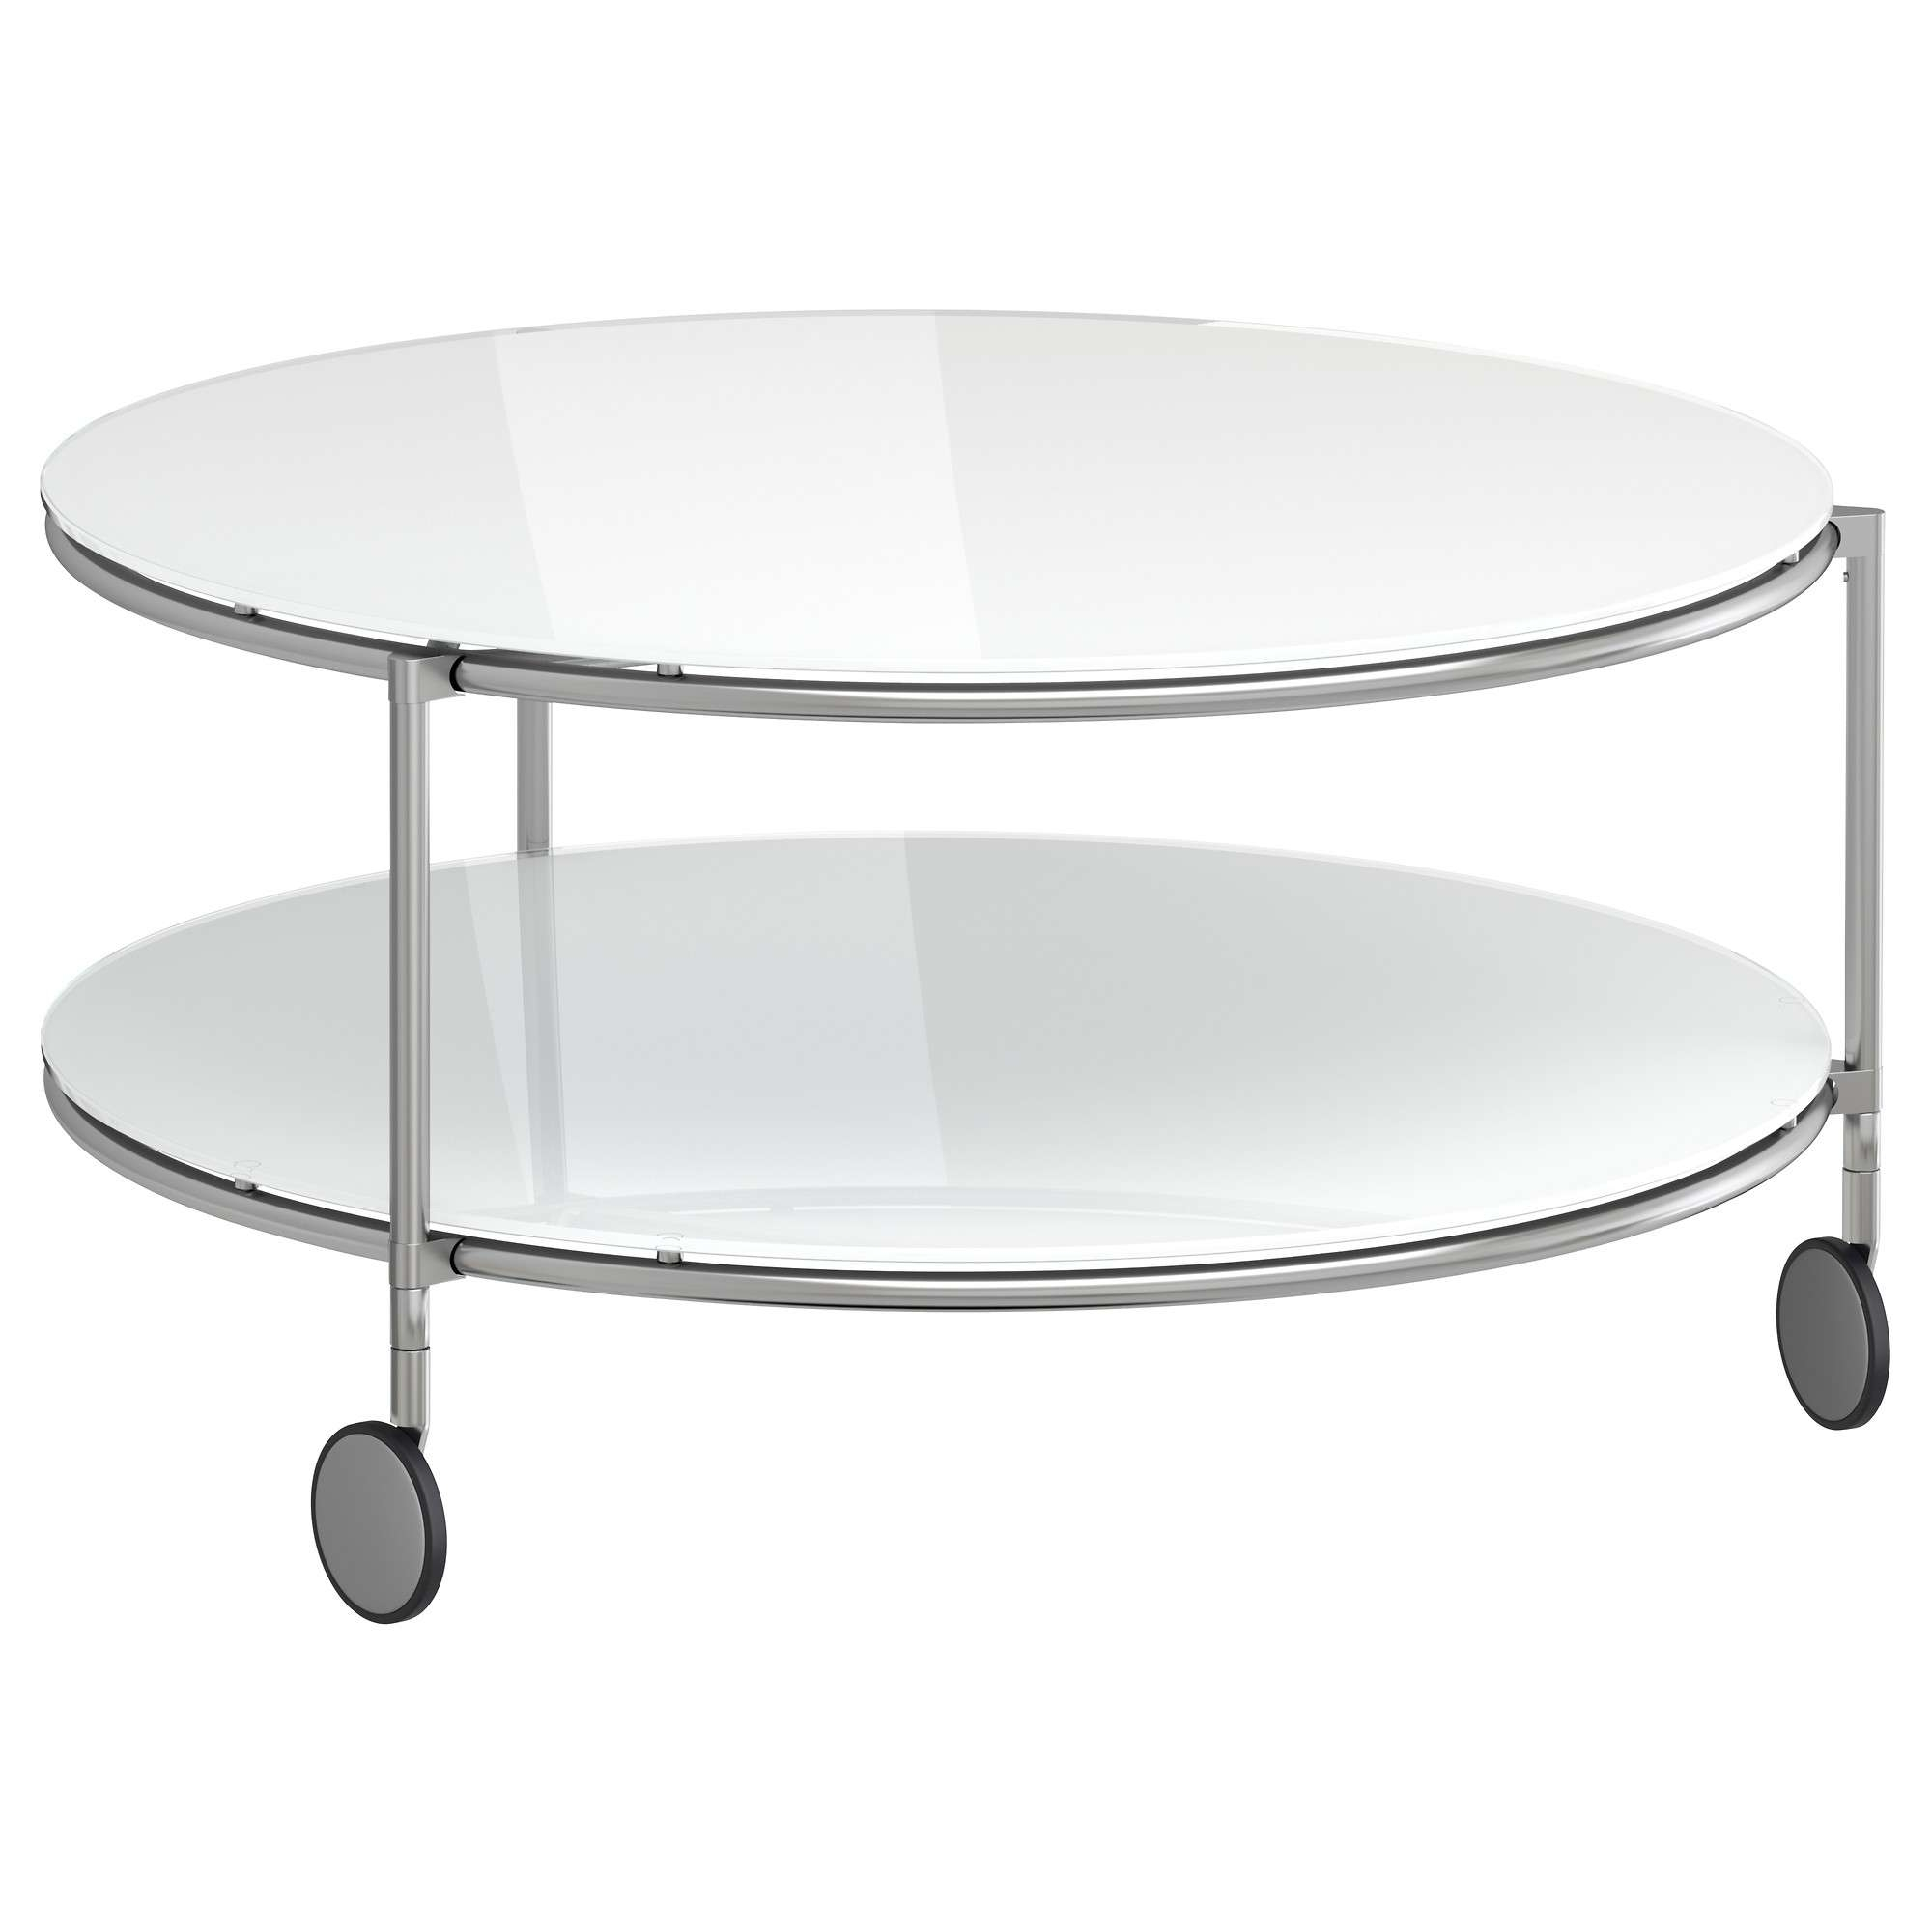 Glass Coffee Table Round – Glass Coffee Table Throughout Most Current Glass Circle Coffee Tables (View 18 of 20)